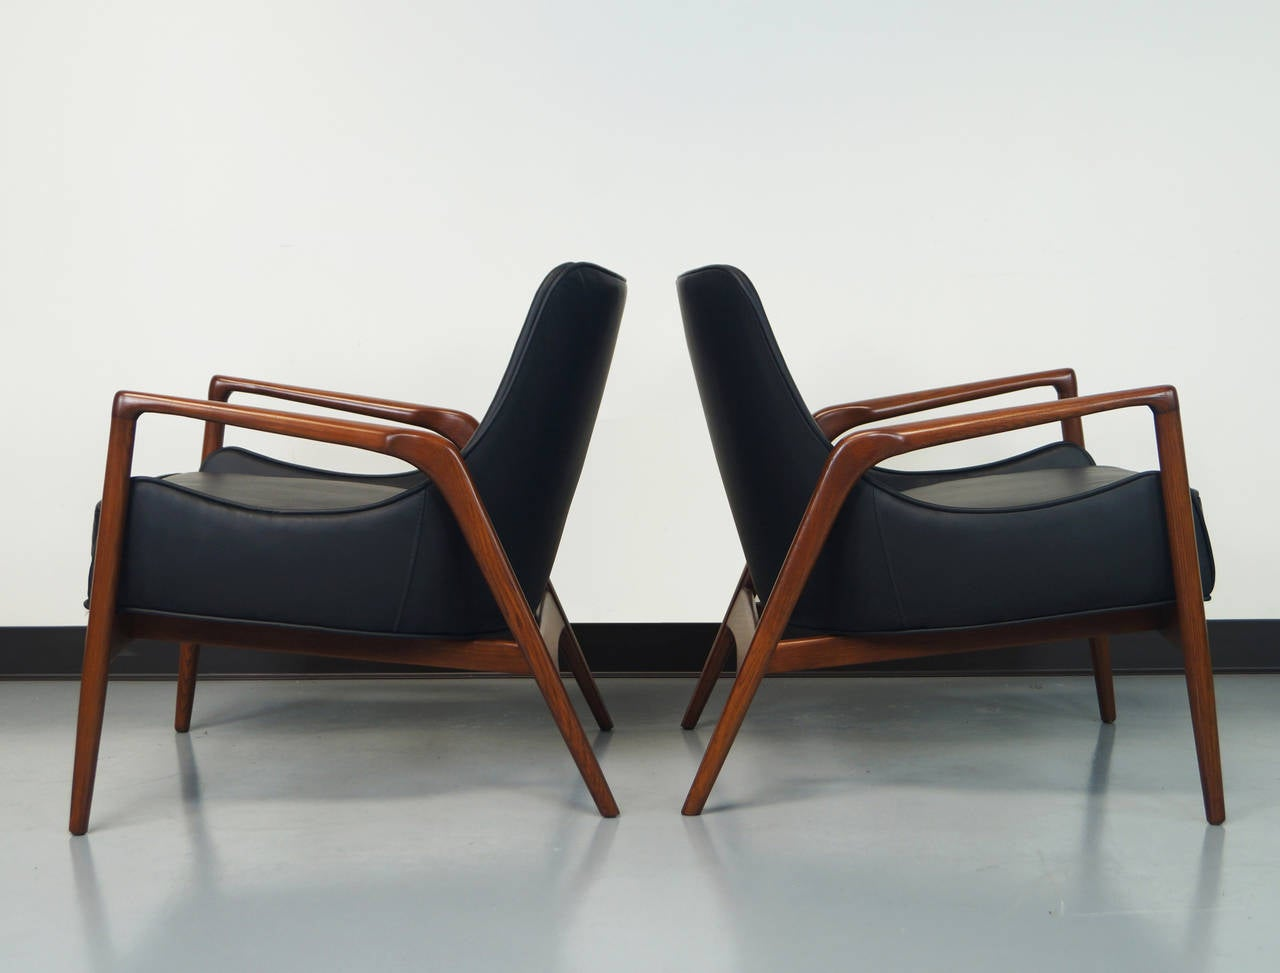 This sculptural pair of lounge chairs by ib kofod larsen is no longer - Danish Modern Leather Lounge Chairs By Ib Kofod Larsen 2